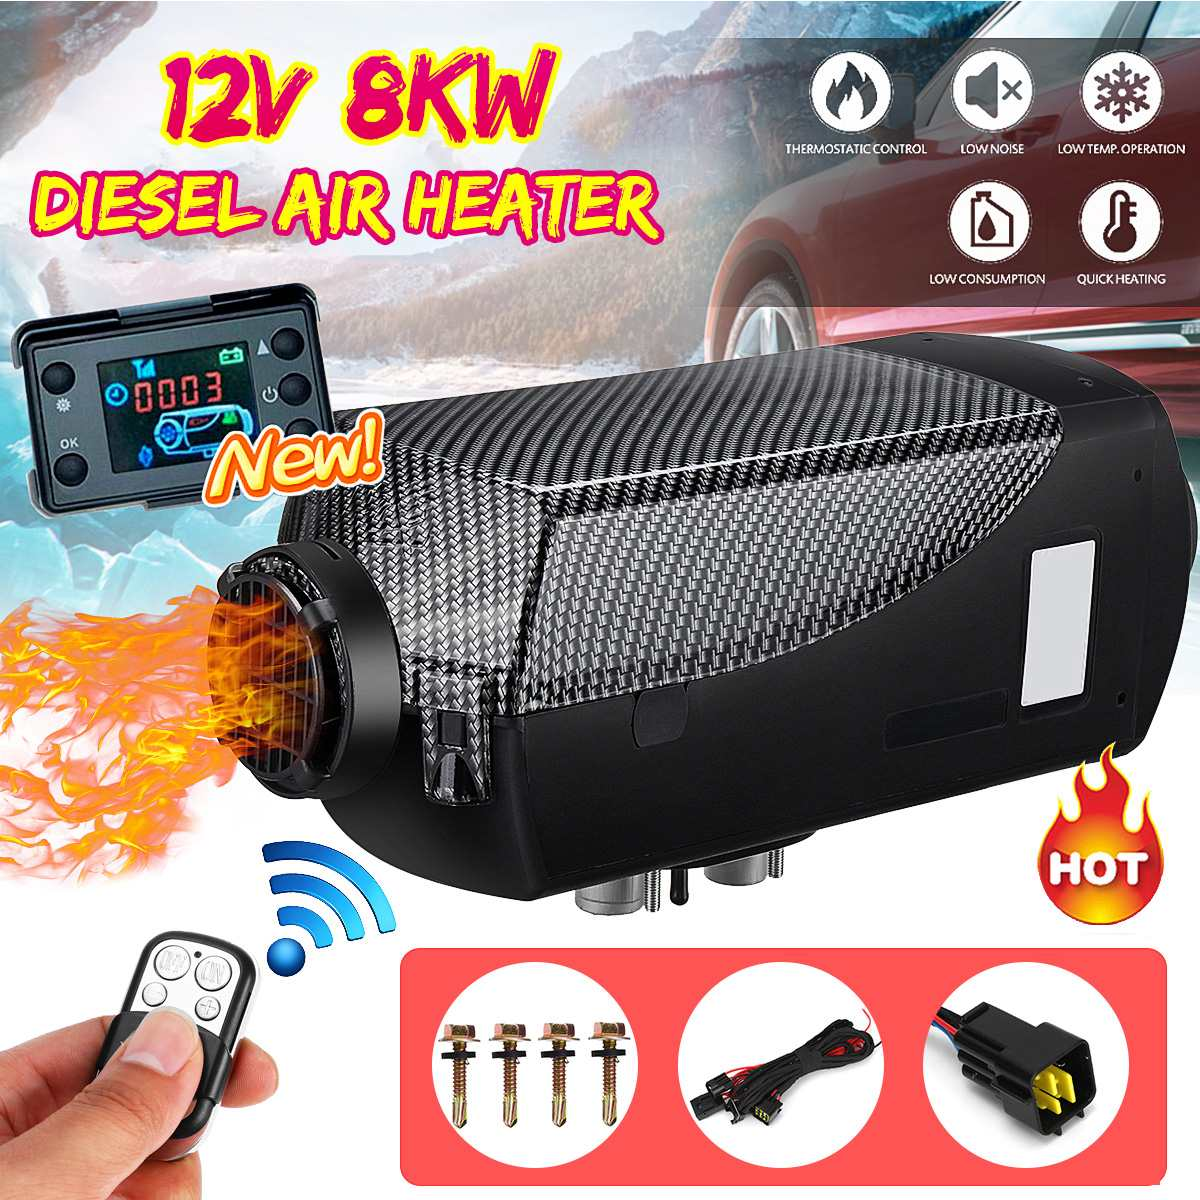 12V 8KW Diesel Air Heater Remote Control Thermostat Motorhome RV Boat Trailer US